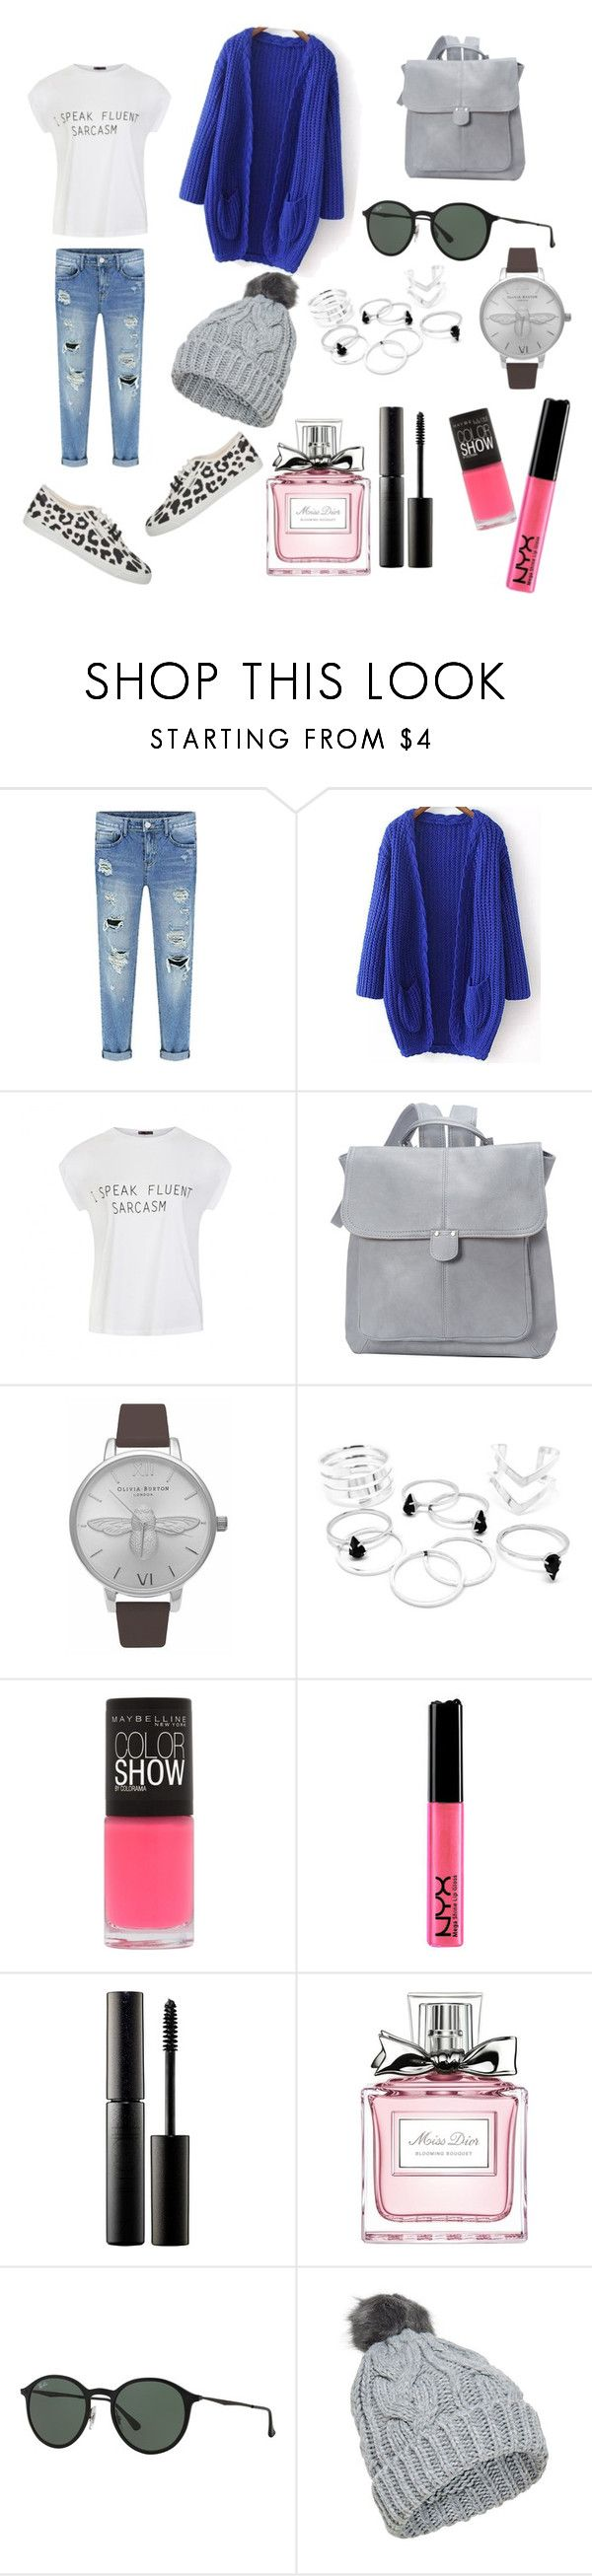 startas by jett-co on Polyvore featuring WithChic, Ally Fashion, Le Donne, Ray-Ban, Surratt, Christian Dior, Maybelline, Startas, women's clothing and women's fashion